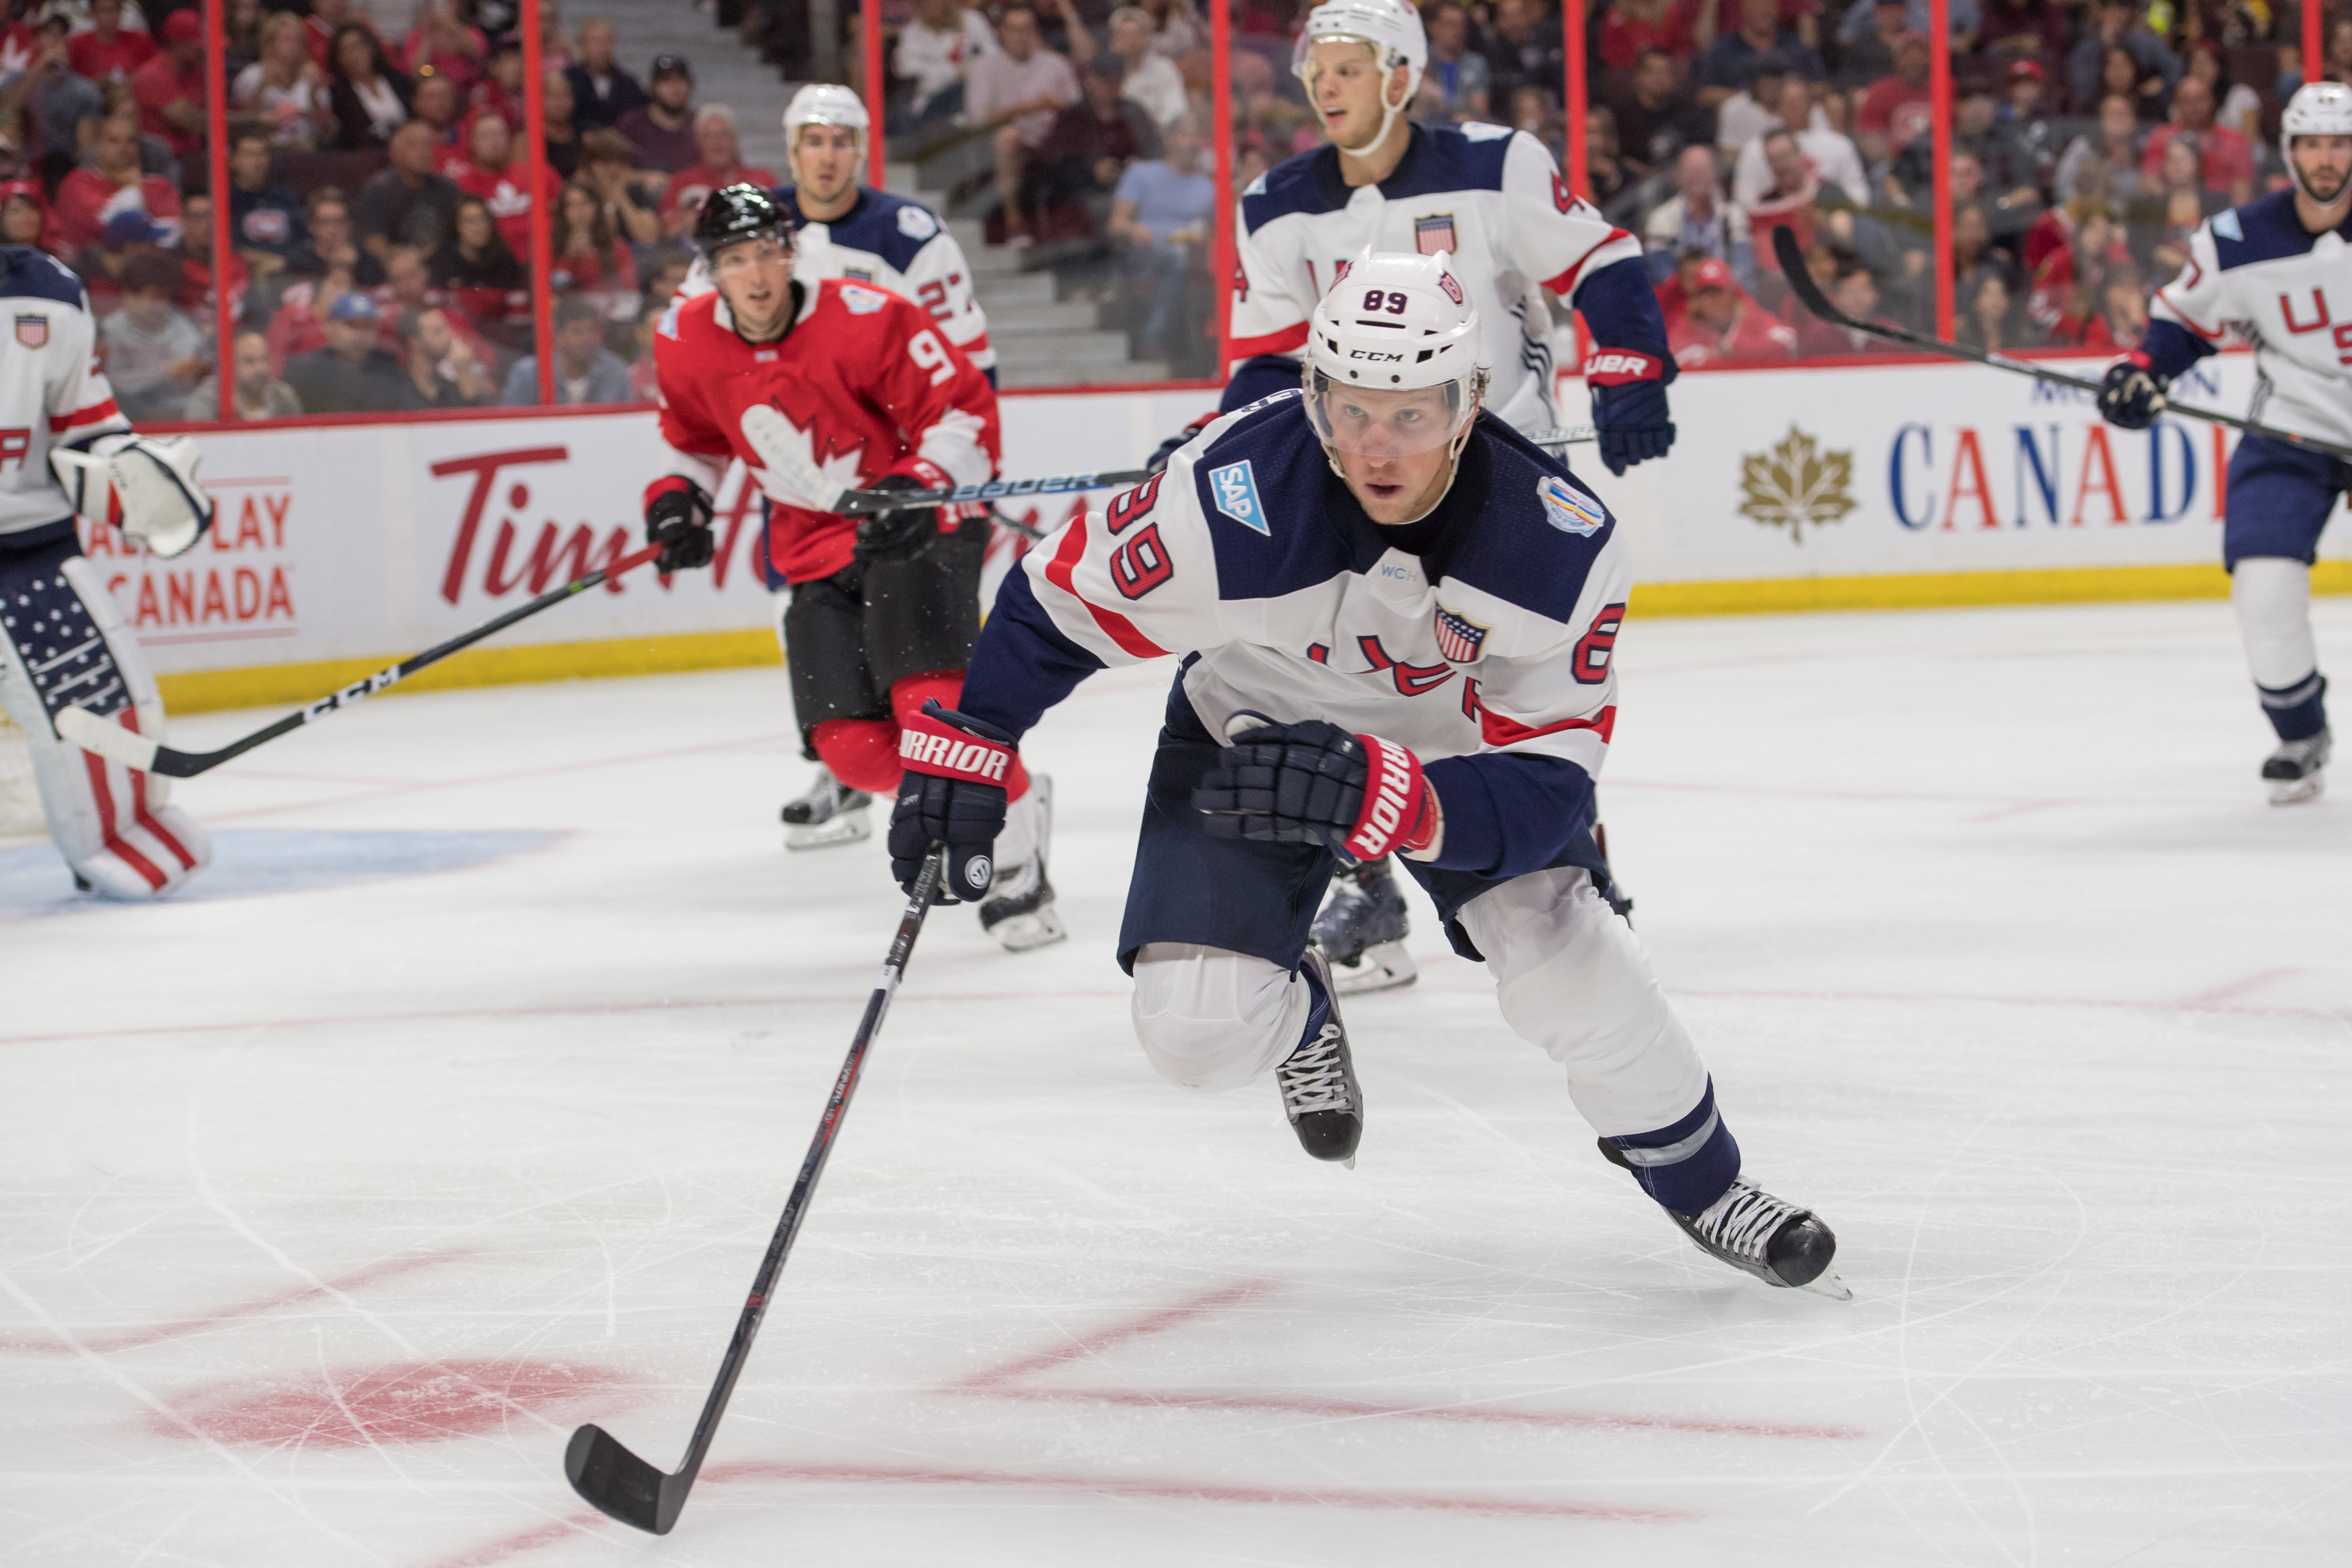 Justin Abdelkader races to commit another penalty